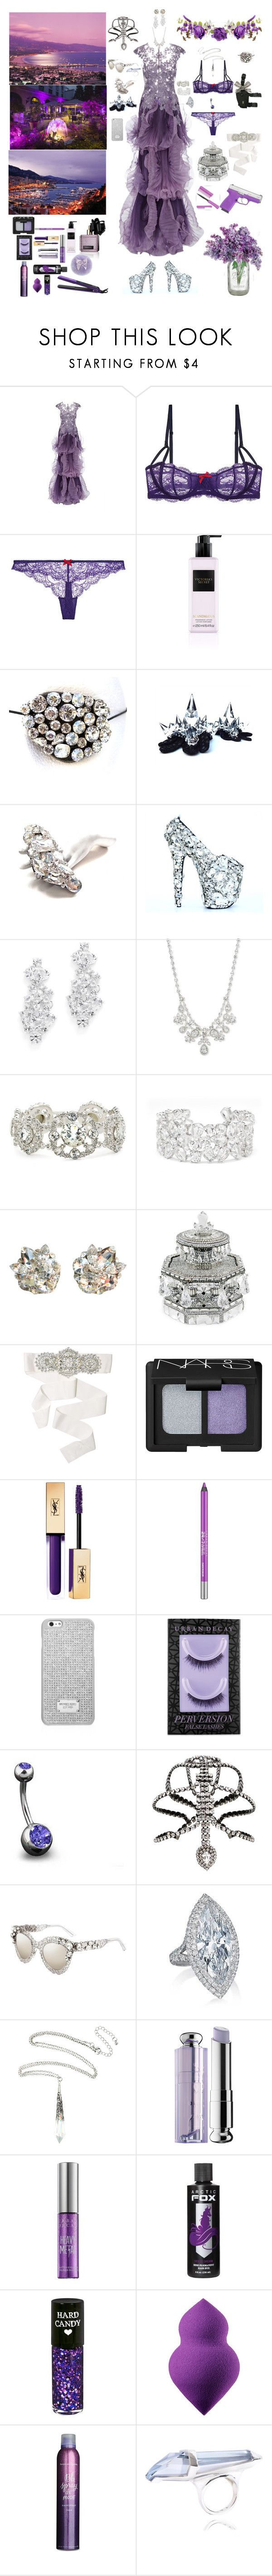 """""""Lilac Legion"""" by blackmagicmomma ❤ liked on Polyvore featuring Marchesa, Heidi Klum, Victoria's Secret, Givenchy, April Soderstrom Jewelry, Judith Leiber, Badgley Mischka, Urban Decay, MICHAEL Michael Kors and Bling Jewelry"""